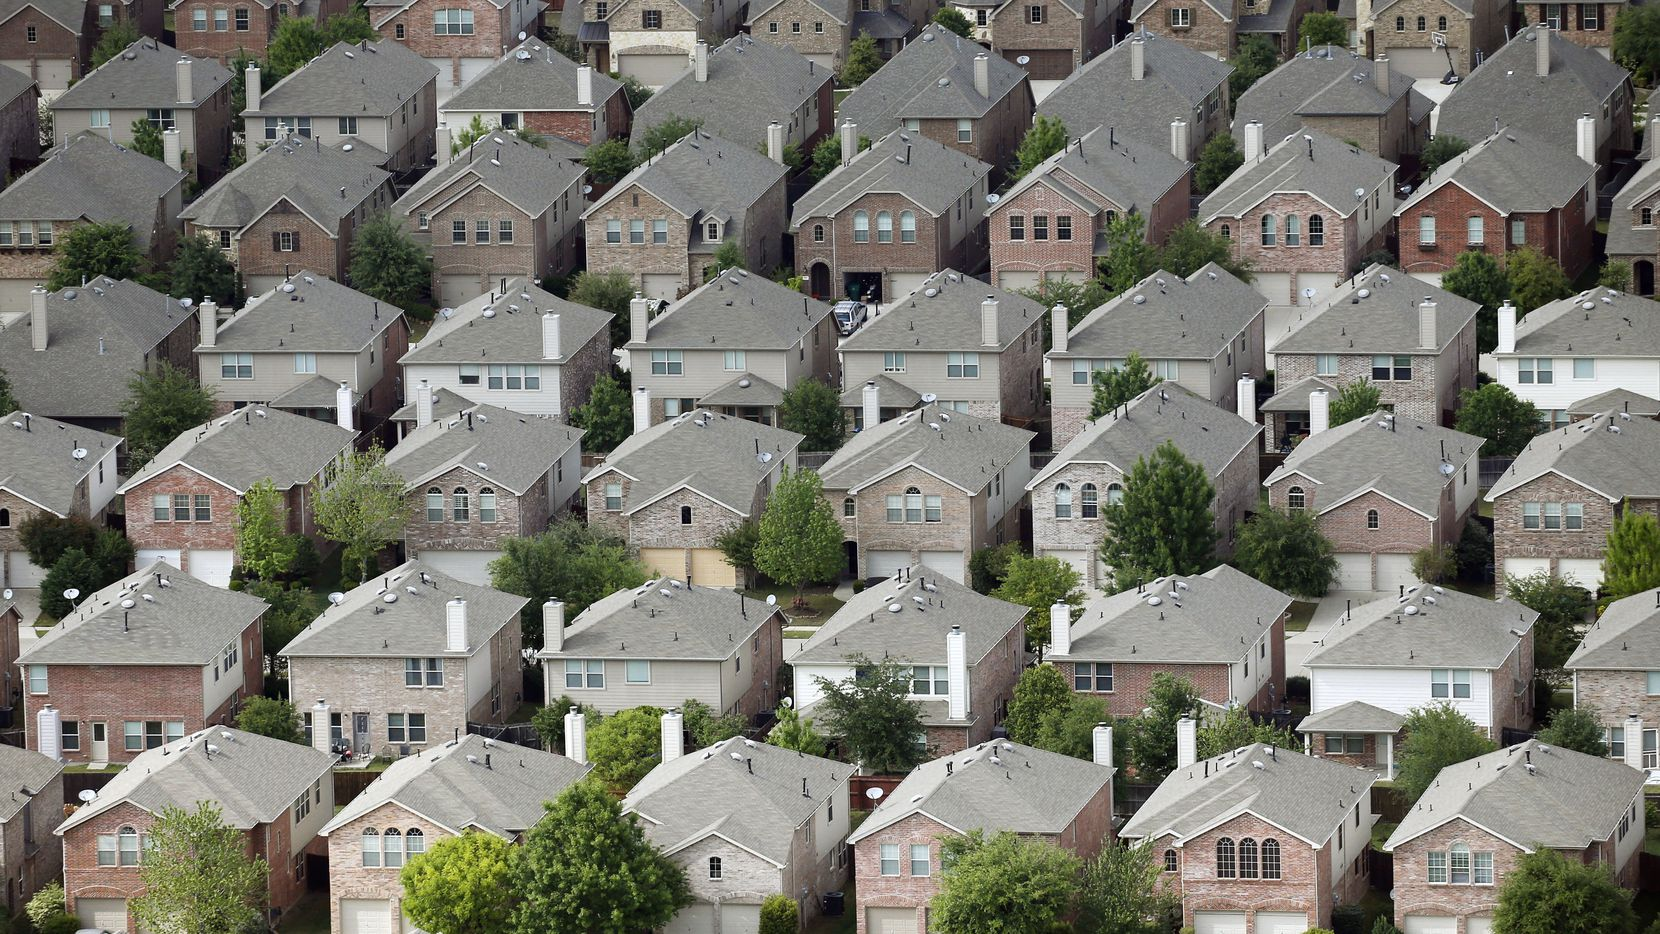 The new partnership plans to build more than 4,000 rental homes.